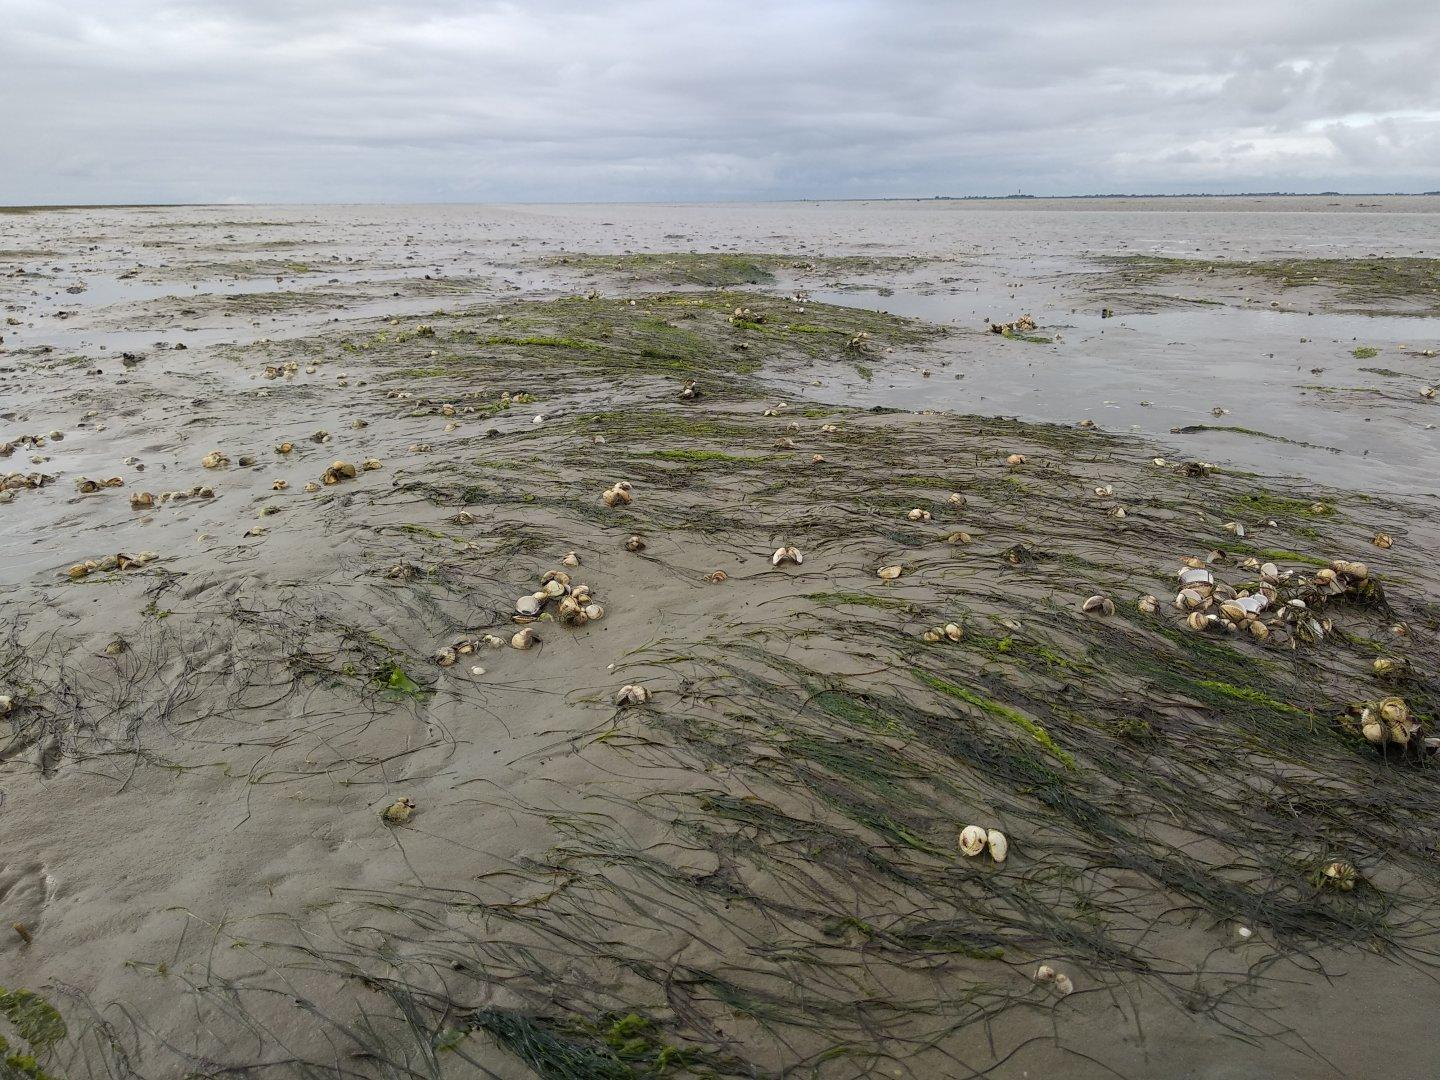 A lot of mud and a bit of water, lots of shells and marine plants.